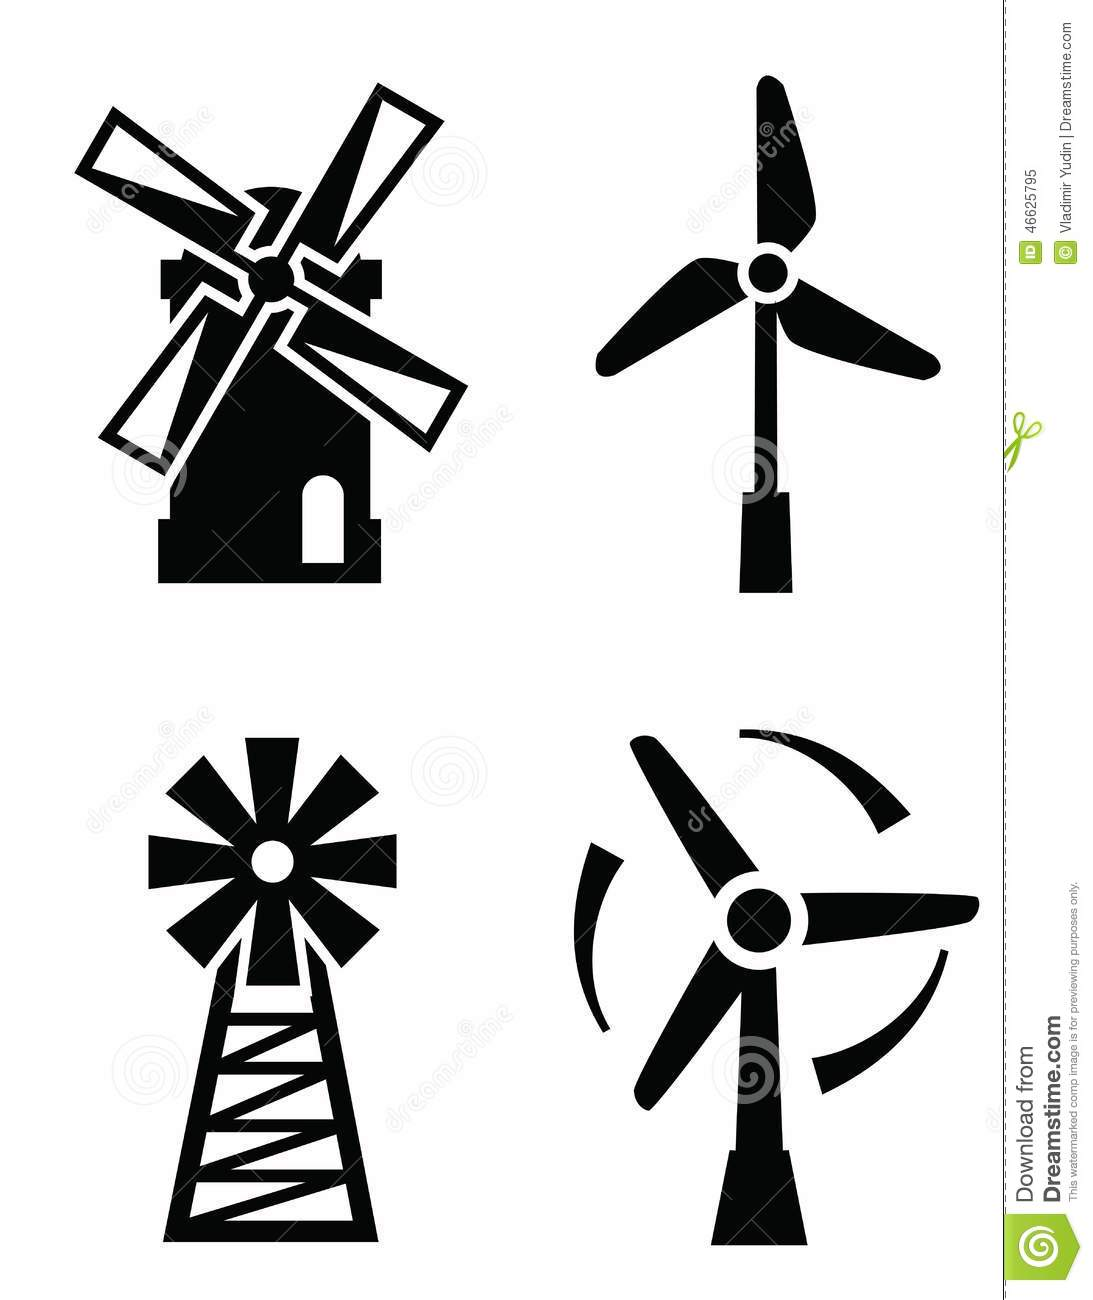 Windmill Icons Stock Vector - Image: 46625795